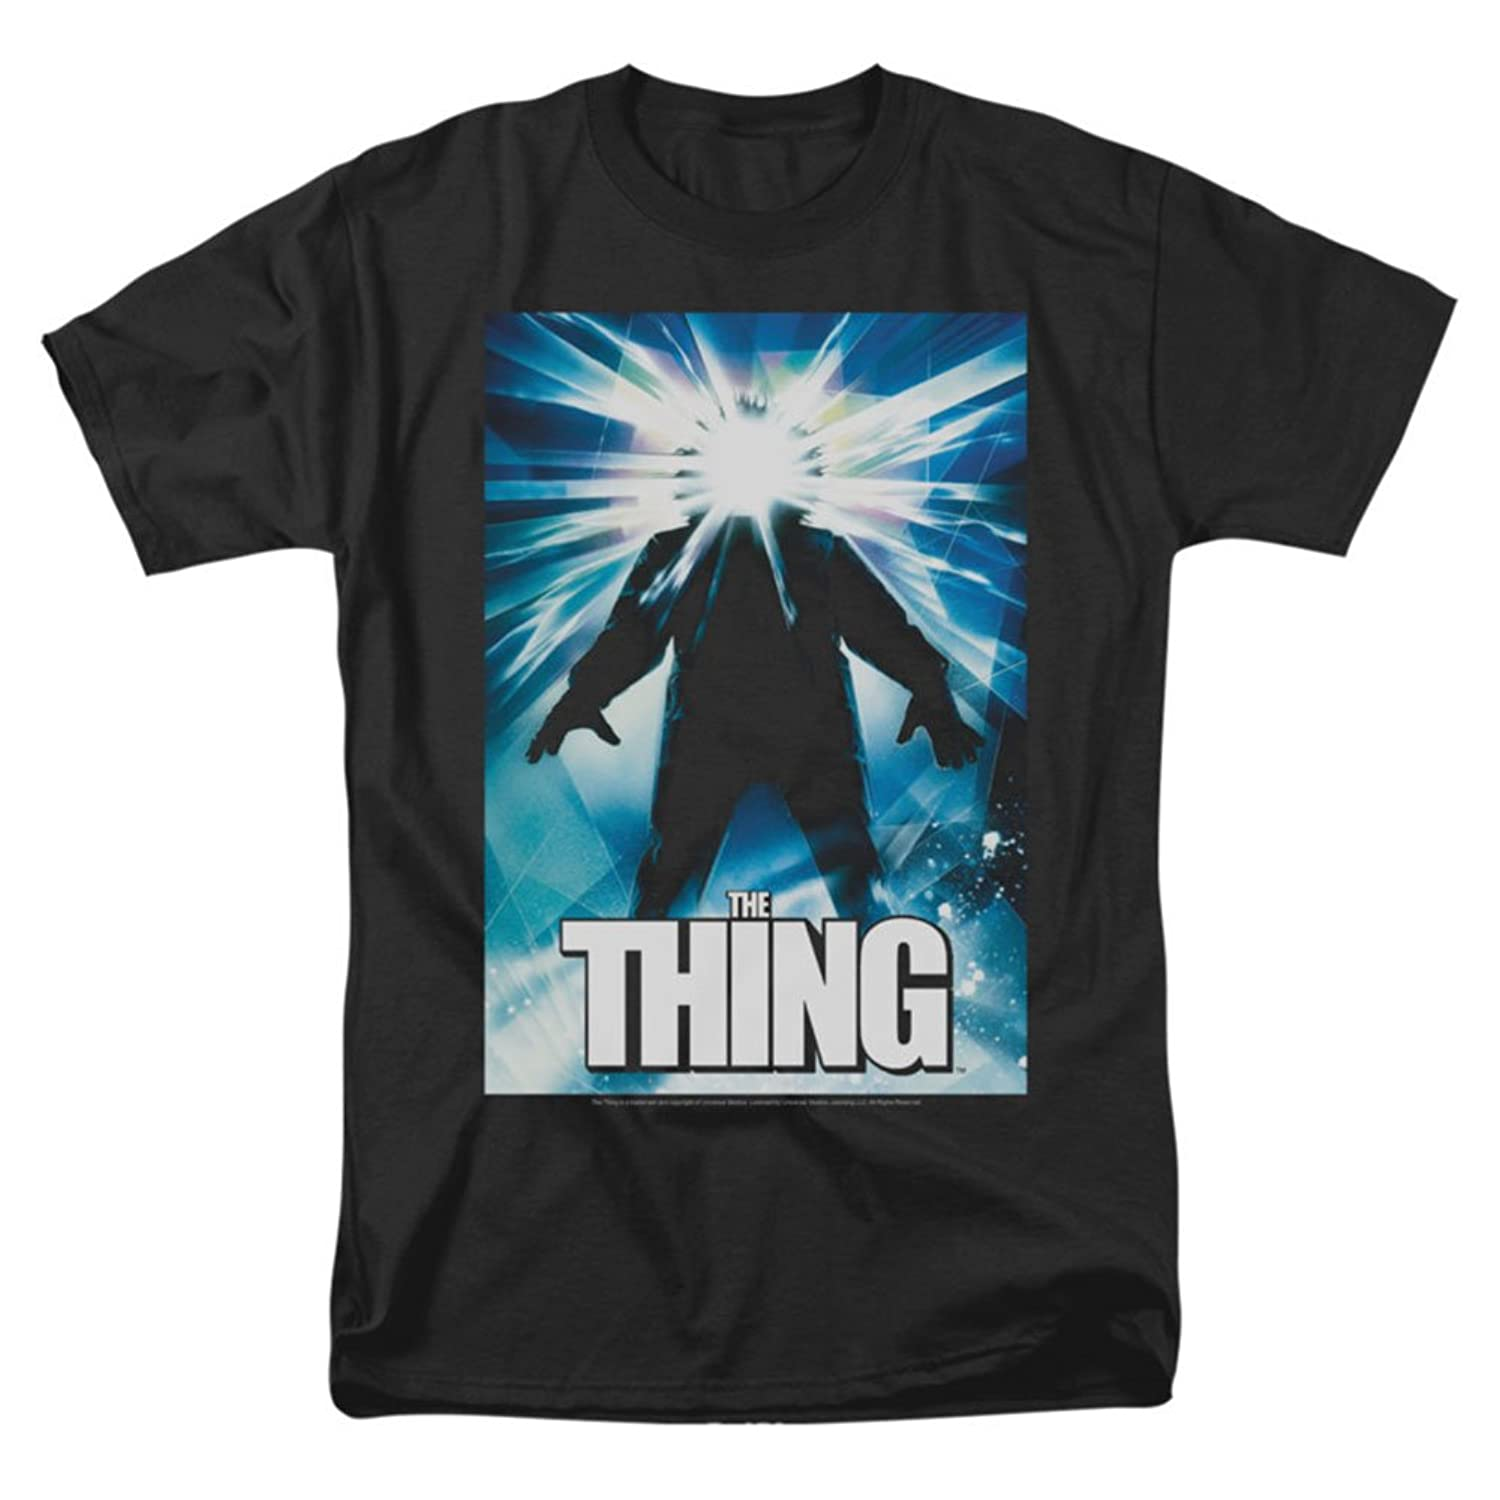 The Thing Science Fiction Horror Thriller Movie Poster Adult Mens T-Shirt